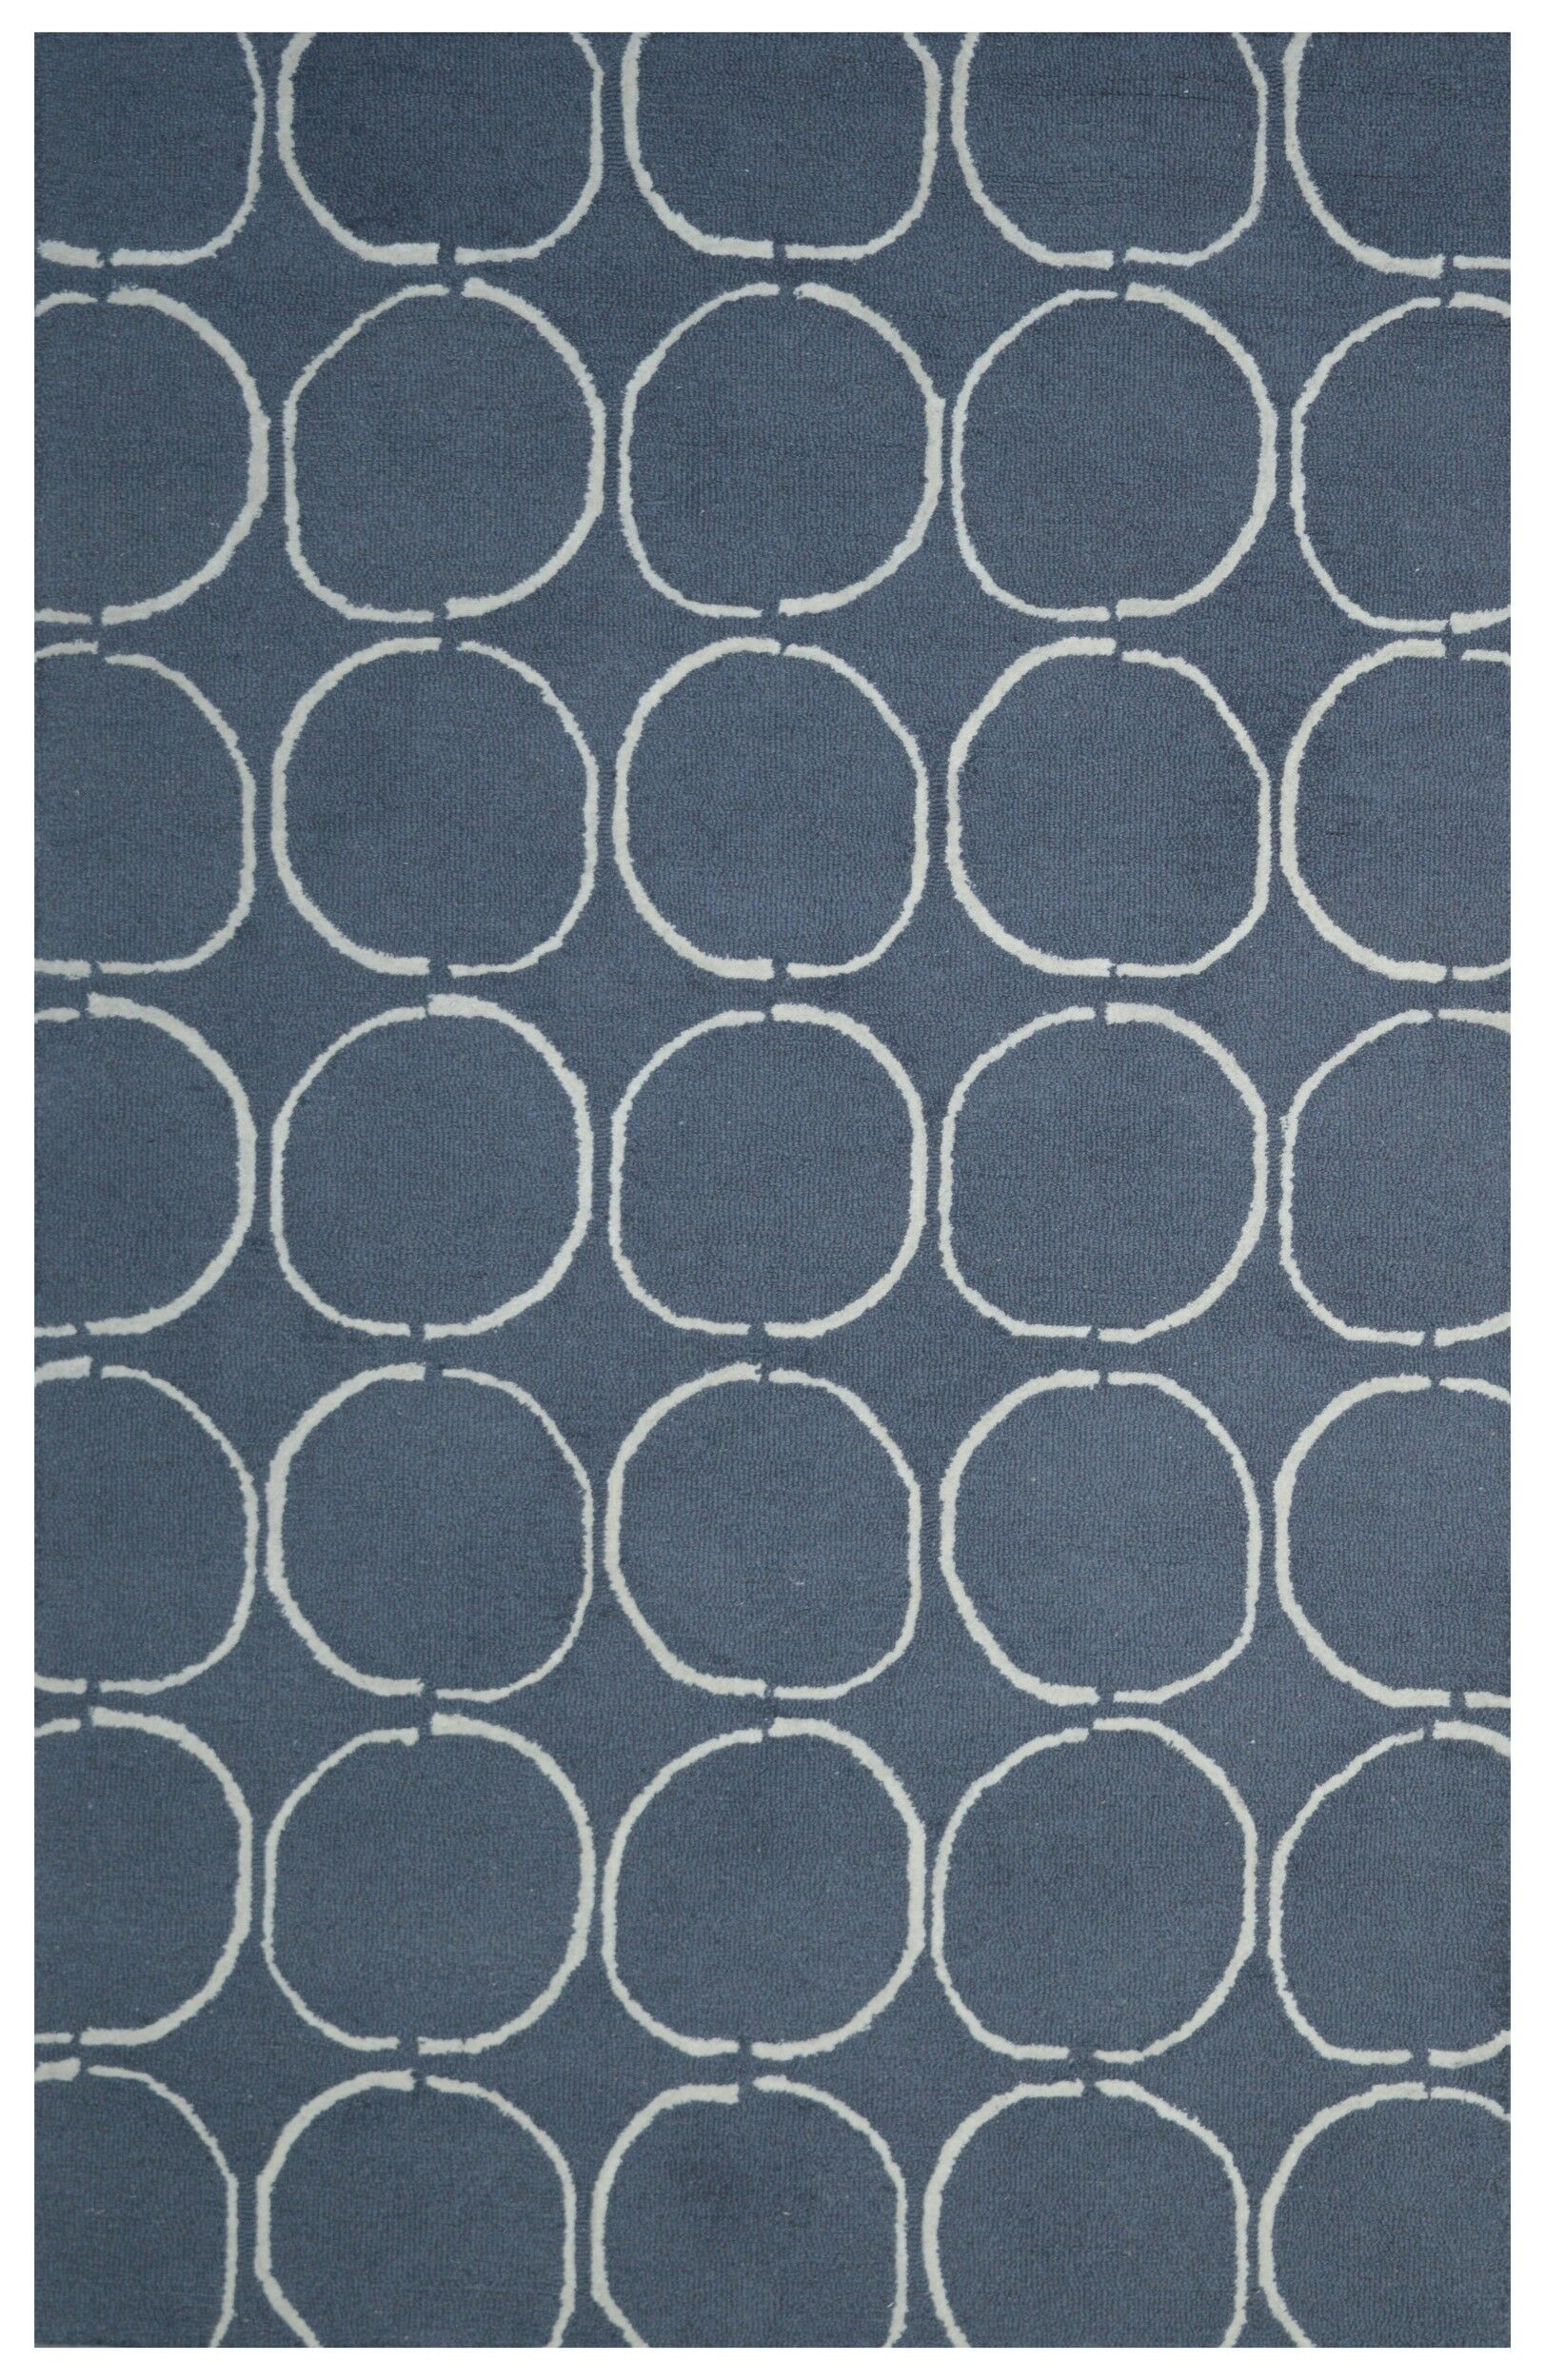 Wool Hand-Tufted Navy Blue/Ivory Area Rug Rug Size: 5' x 8'